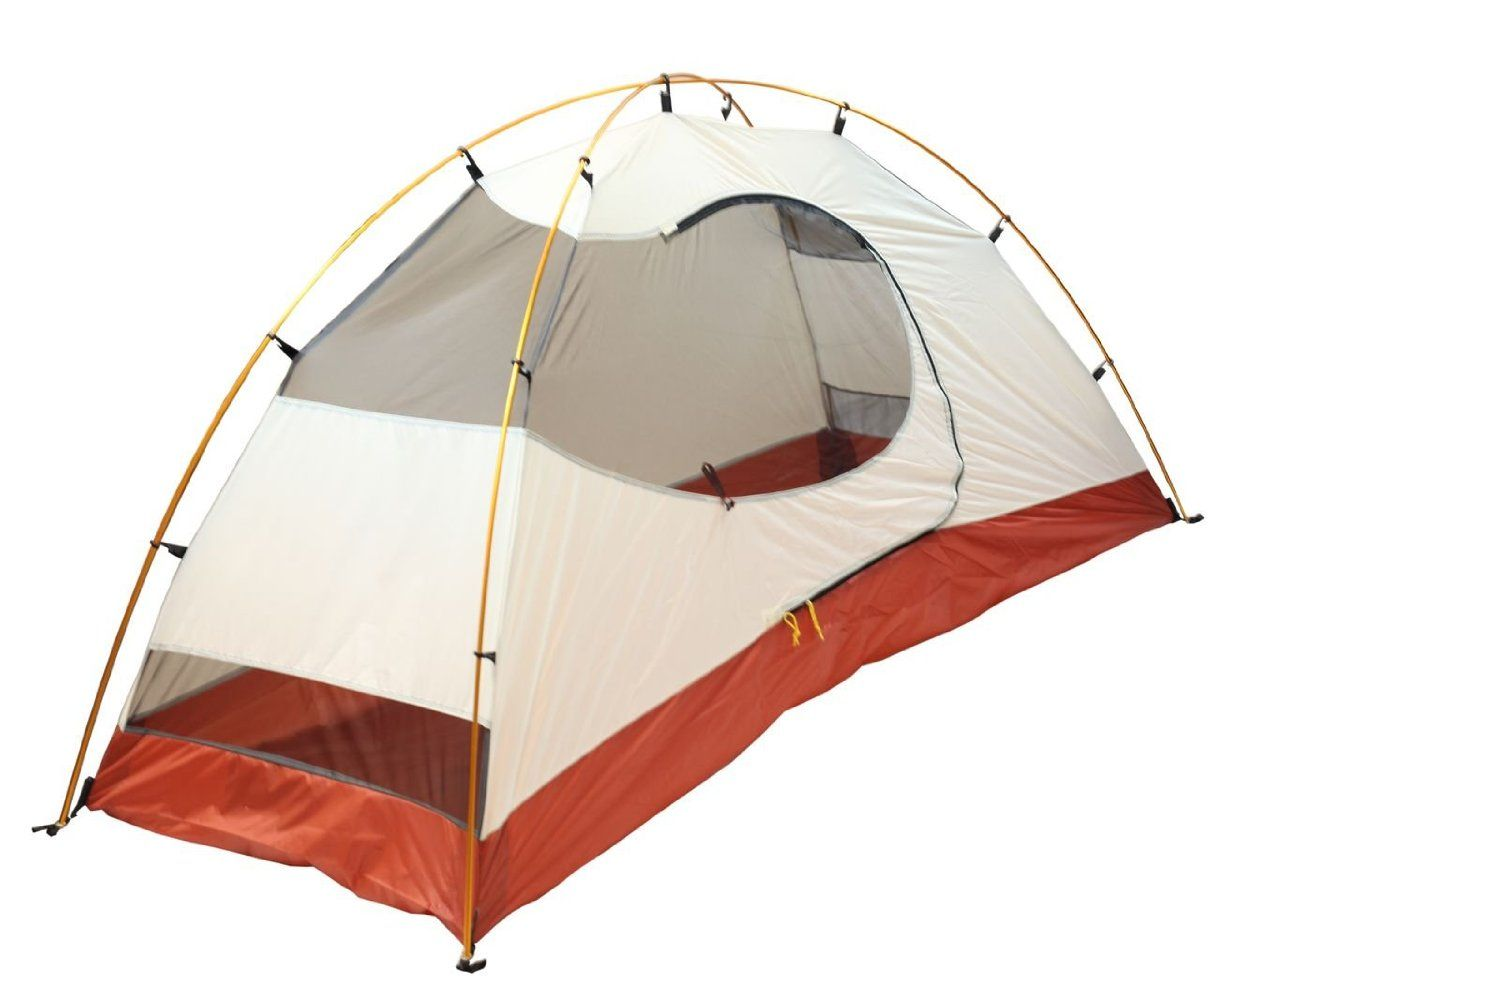 The Ledge Sports Scorpion Lightweight 1 person tent is specially aimed at making your c&ing or hiking expedition a success.  sc 1 st  Pinterest & Ledge Sports Scorpion Lightweight 1 Person Tent | Best Backpacking ...